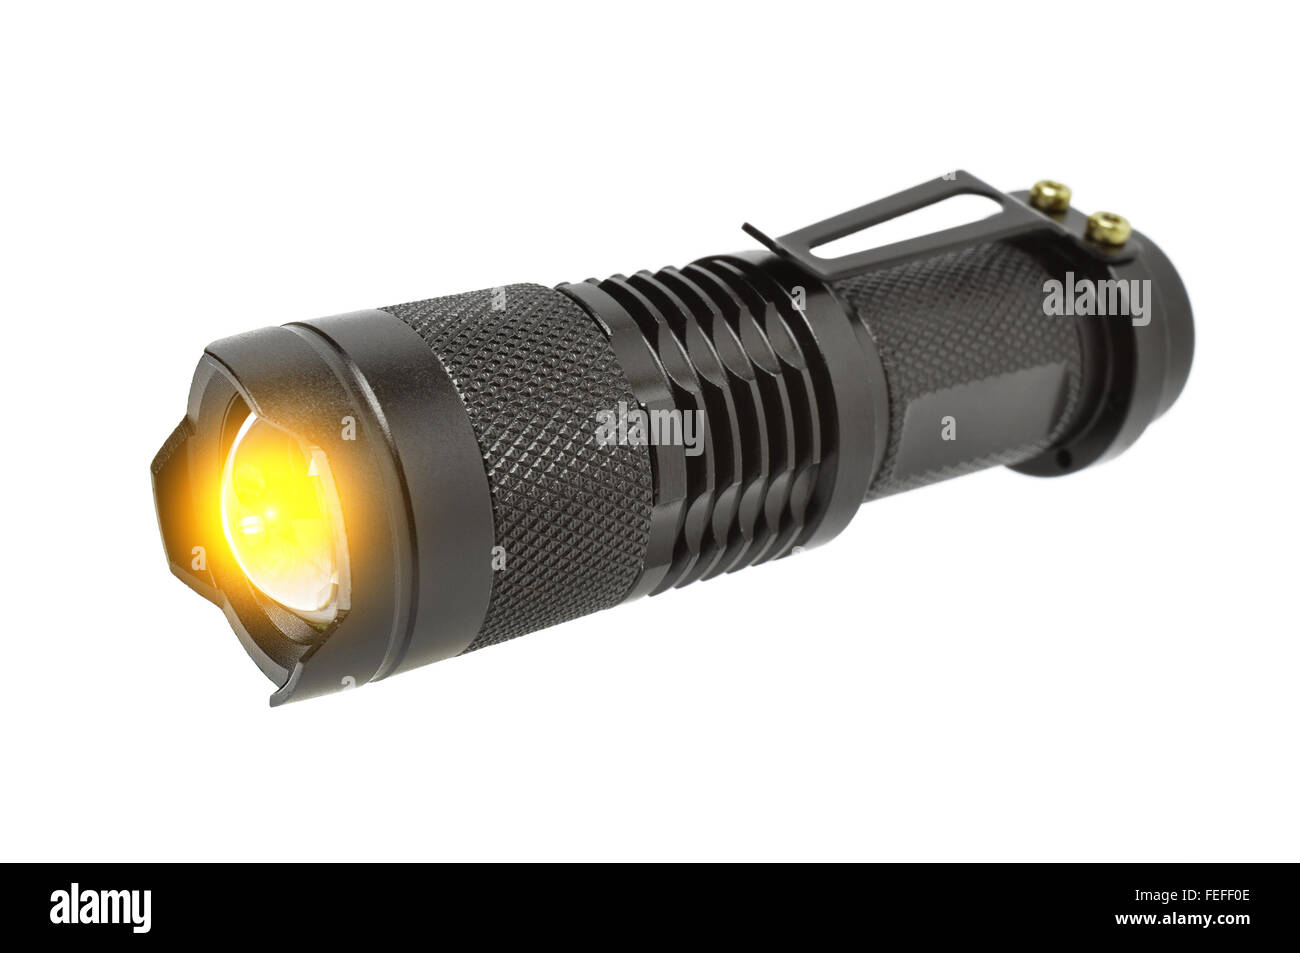 Electric LED torch isolated on a white background - Stock Image